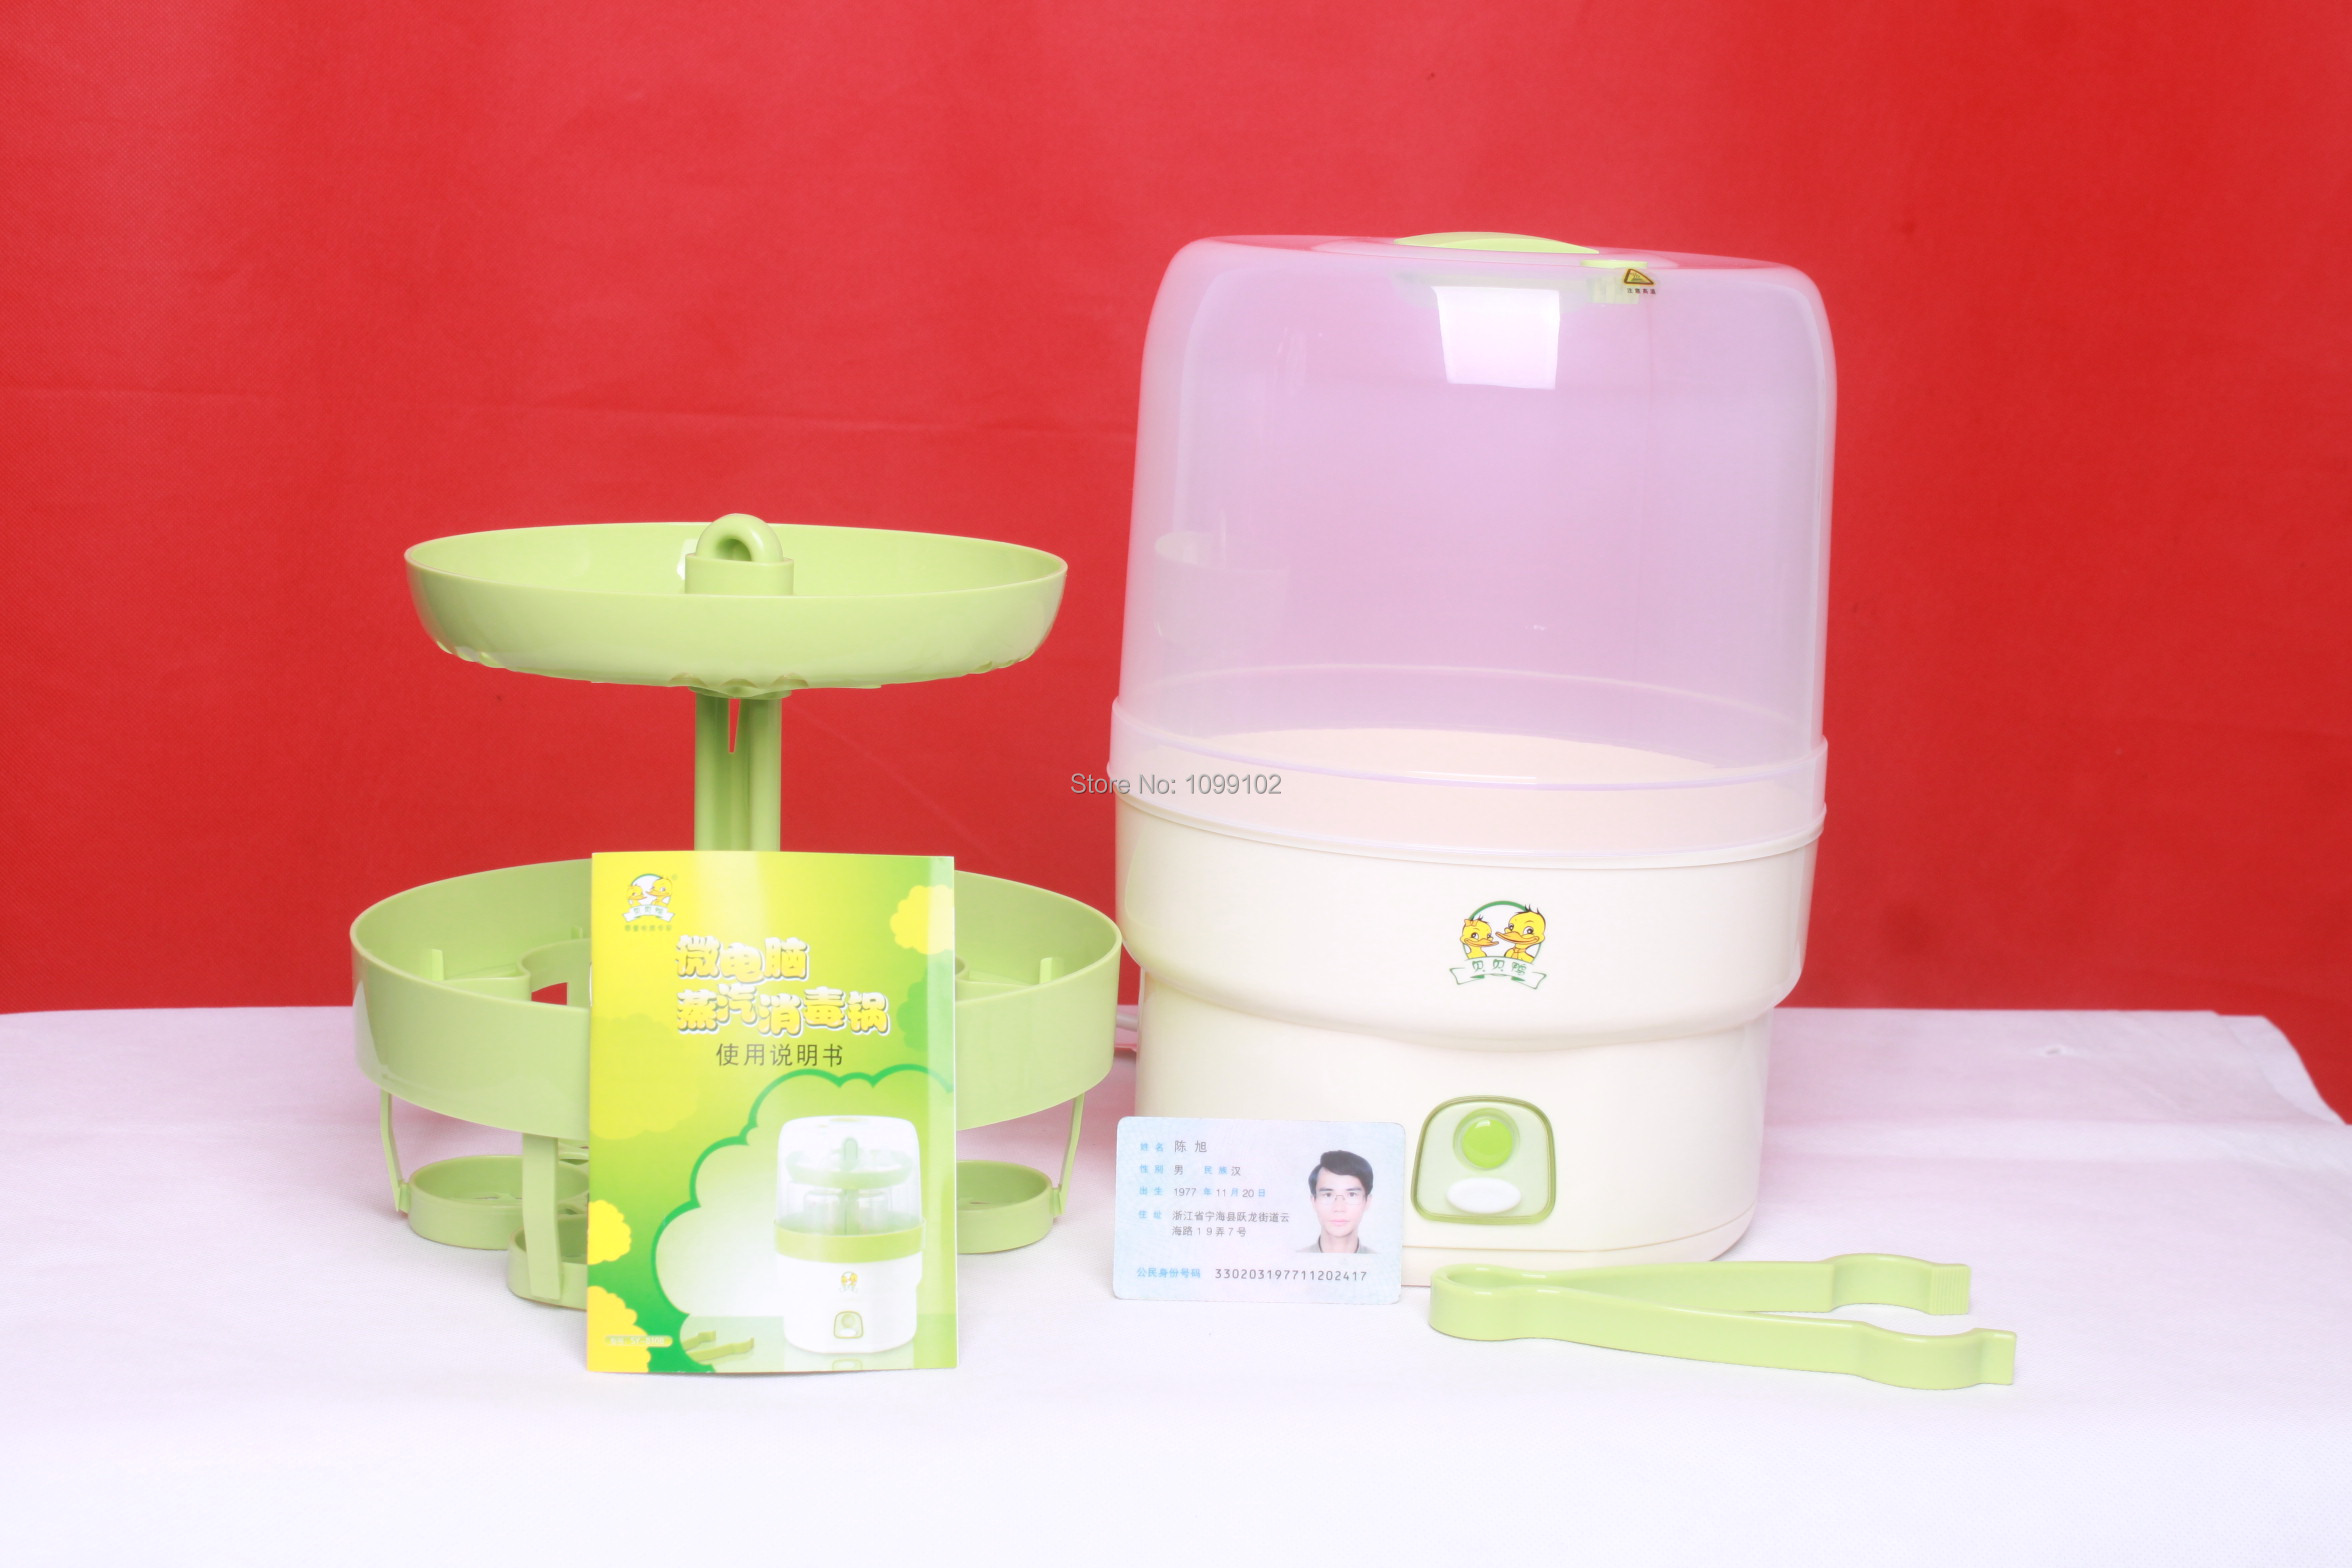 Duck baby bottle steam sterilizer bb supplies milk steriliazer disinfection machine - GY mall store